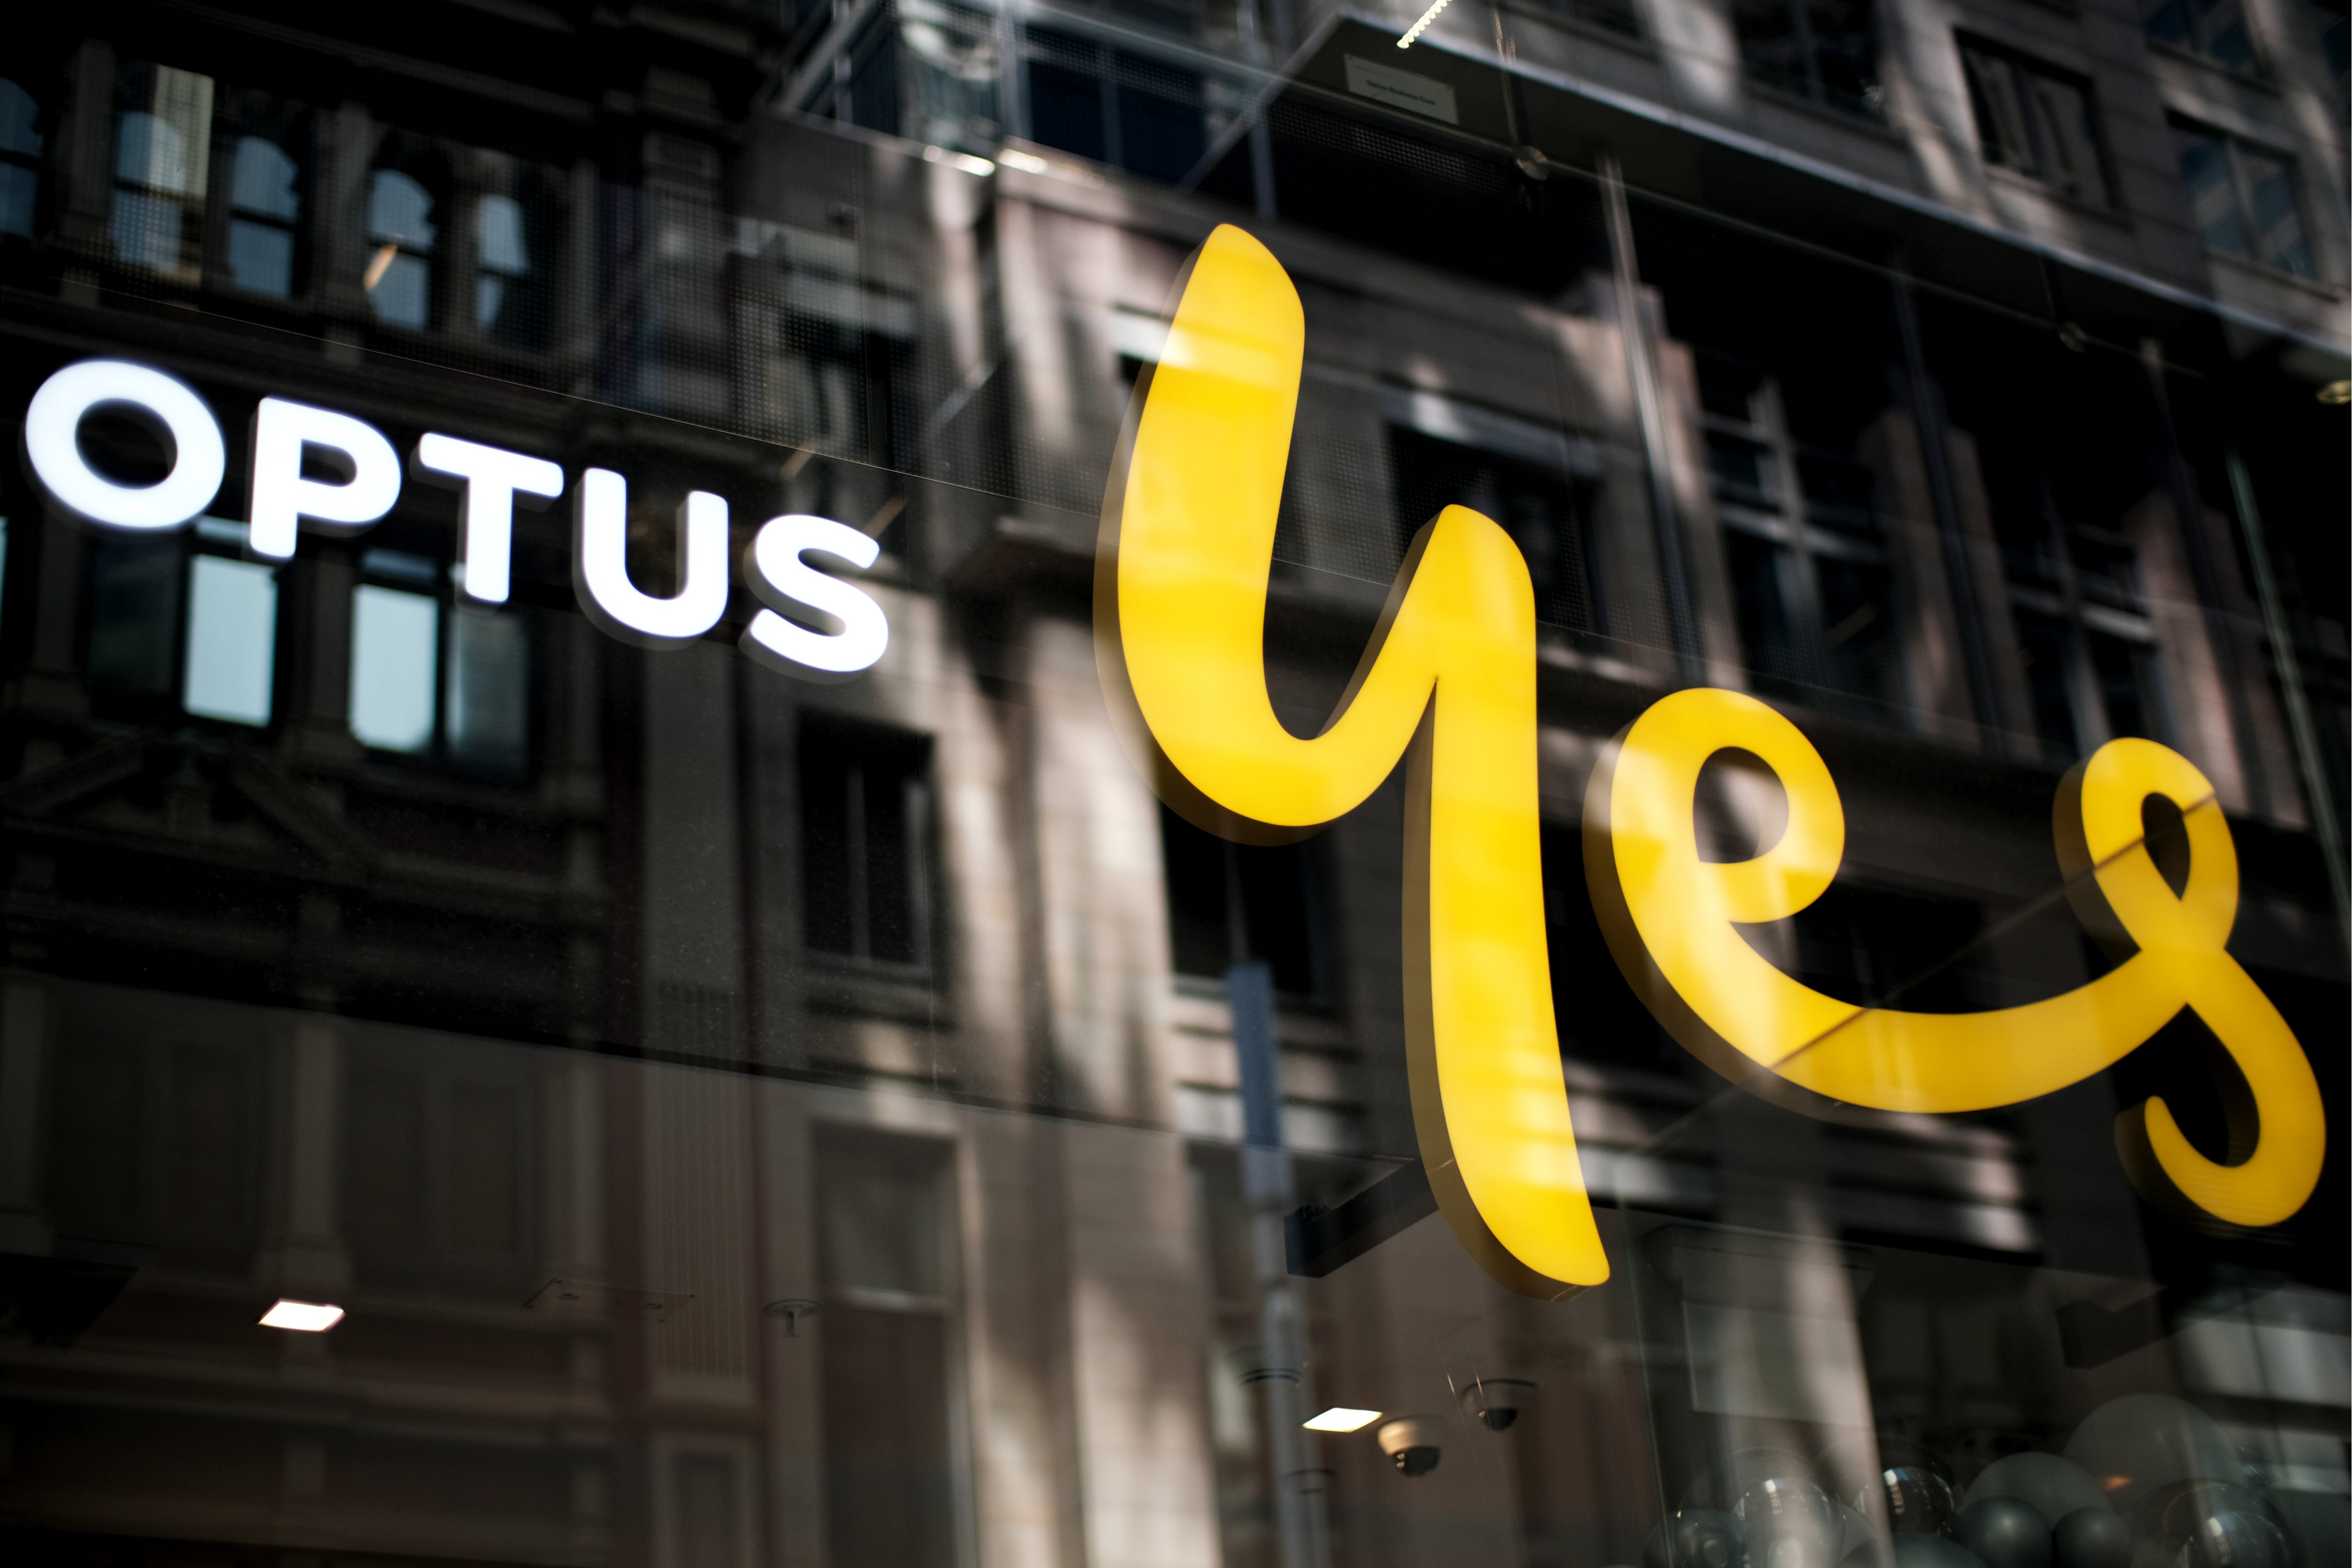 Optus staff to be encouraged to work from home even after lockdown-min.jpg